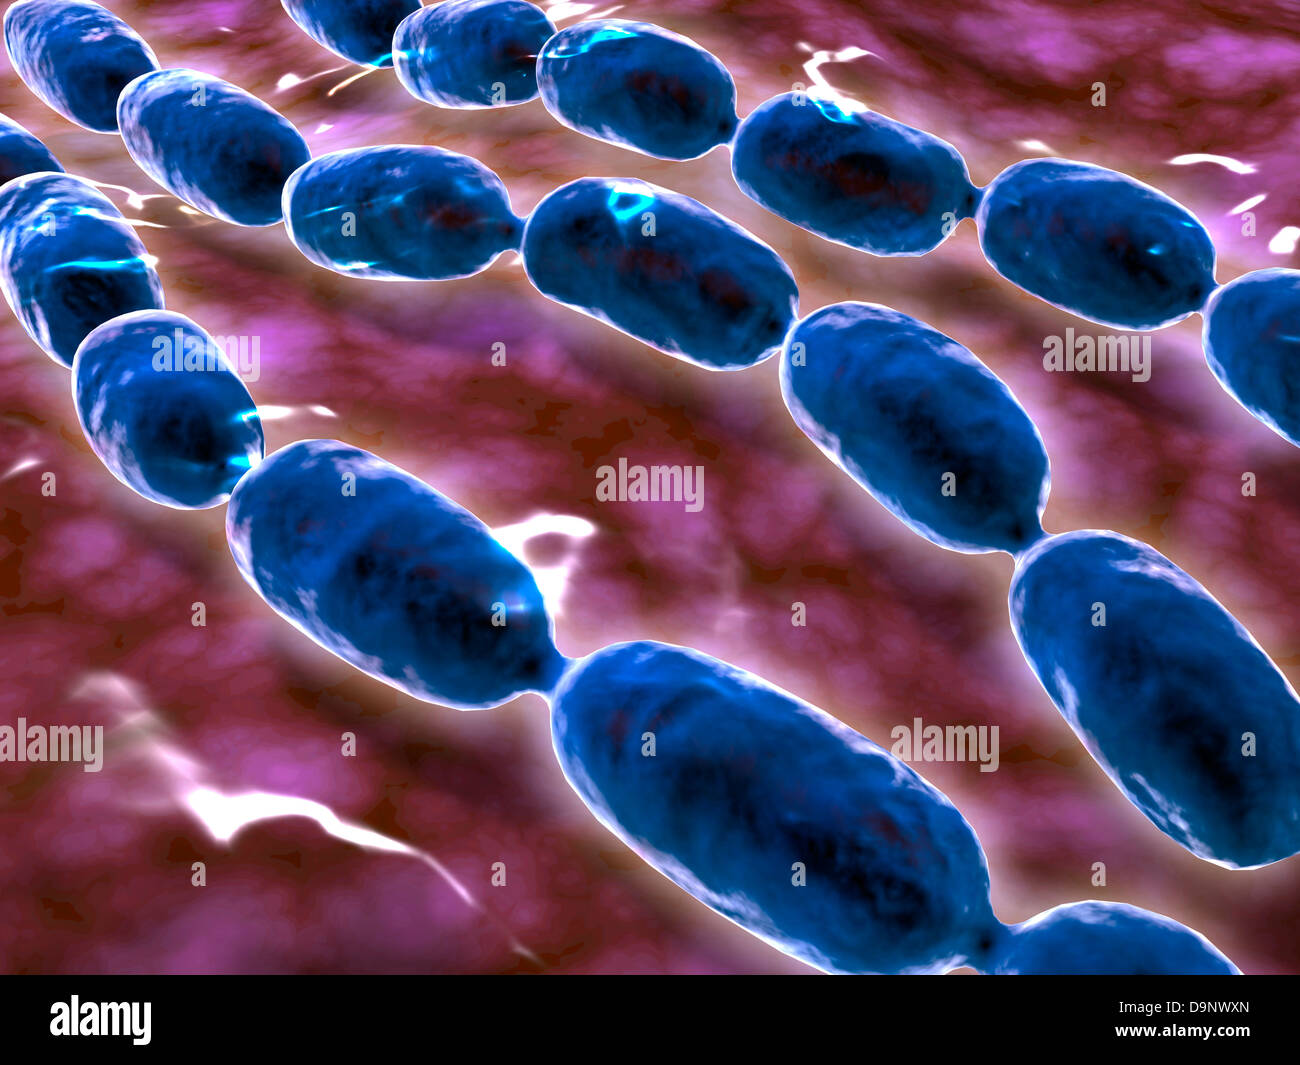 Microscopic view of bacterial pneumonia. - Stock Image